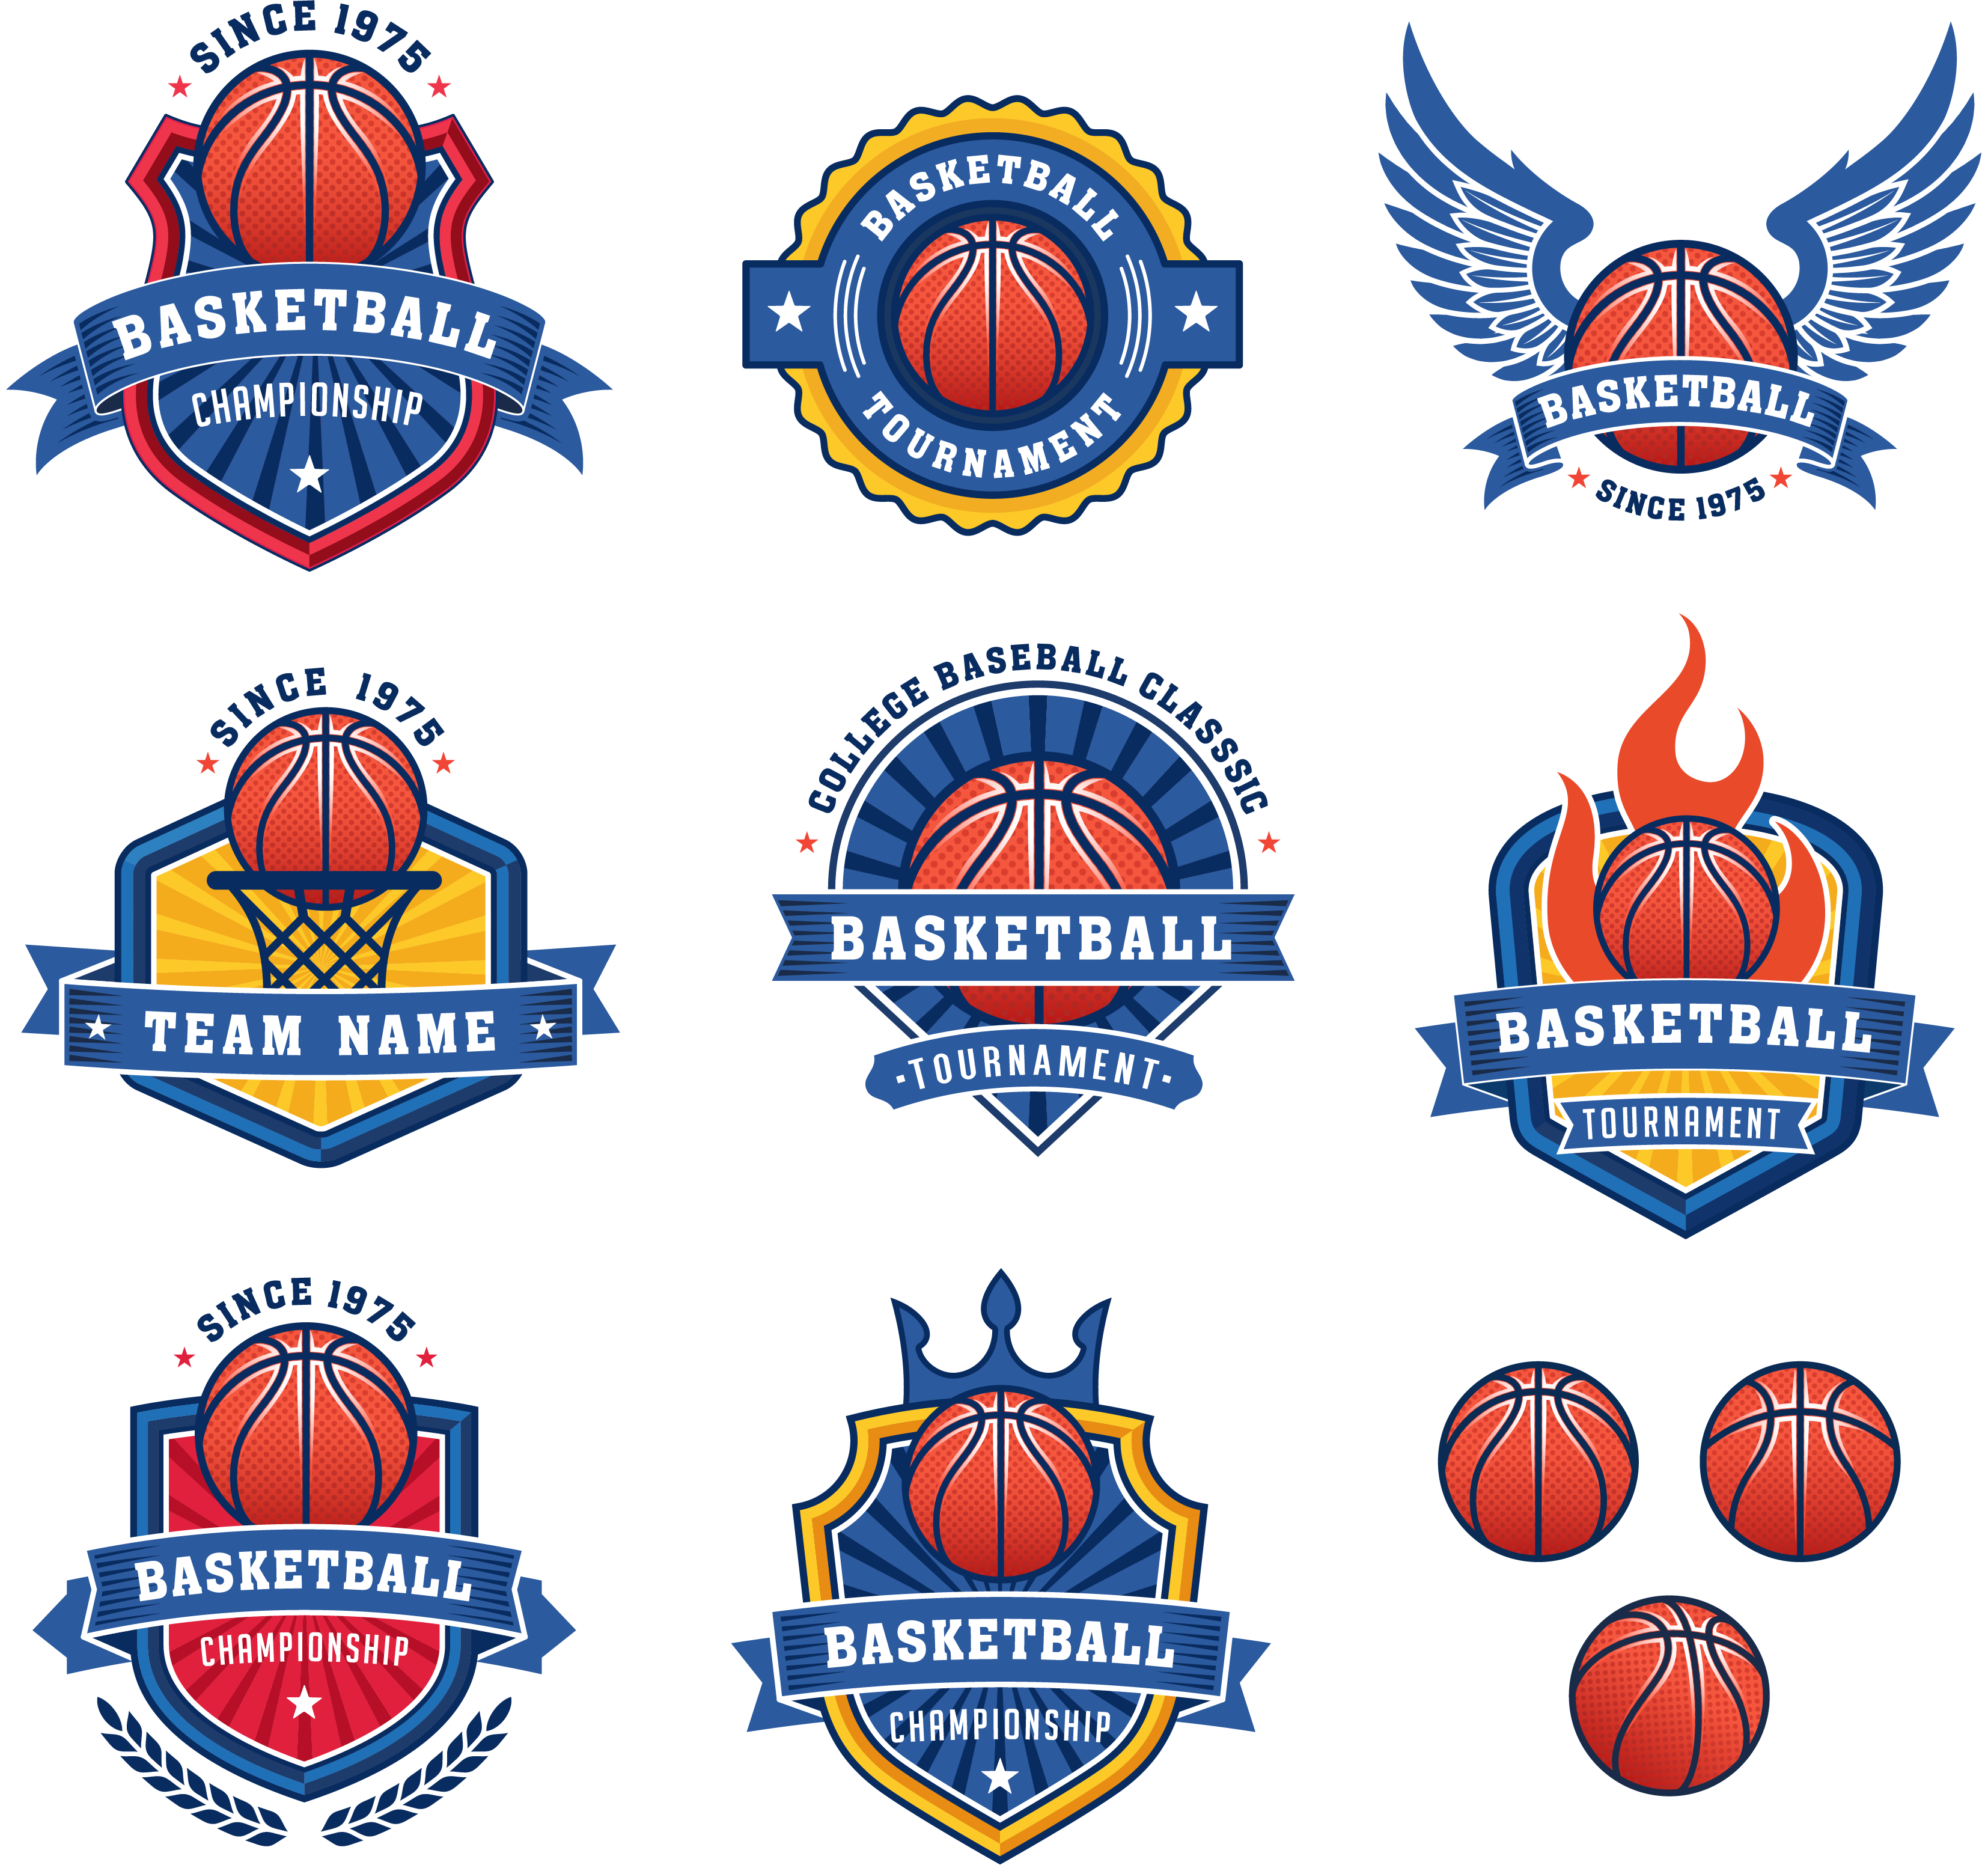 Basketball crest clipart vector transparent Basketball Logo Royalty-free Stock photography - Blue basketball ... vector transparent